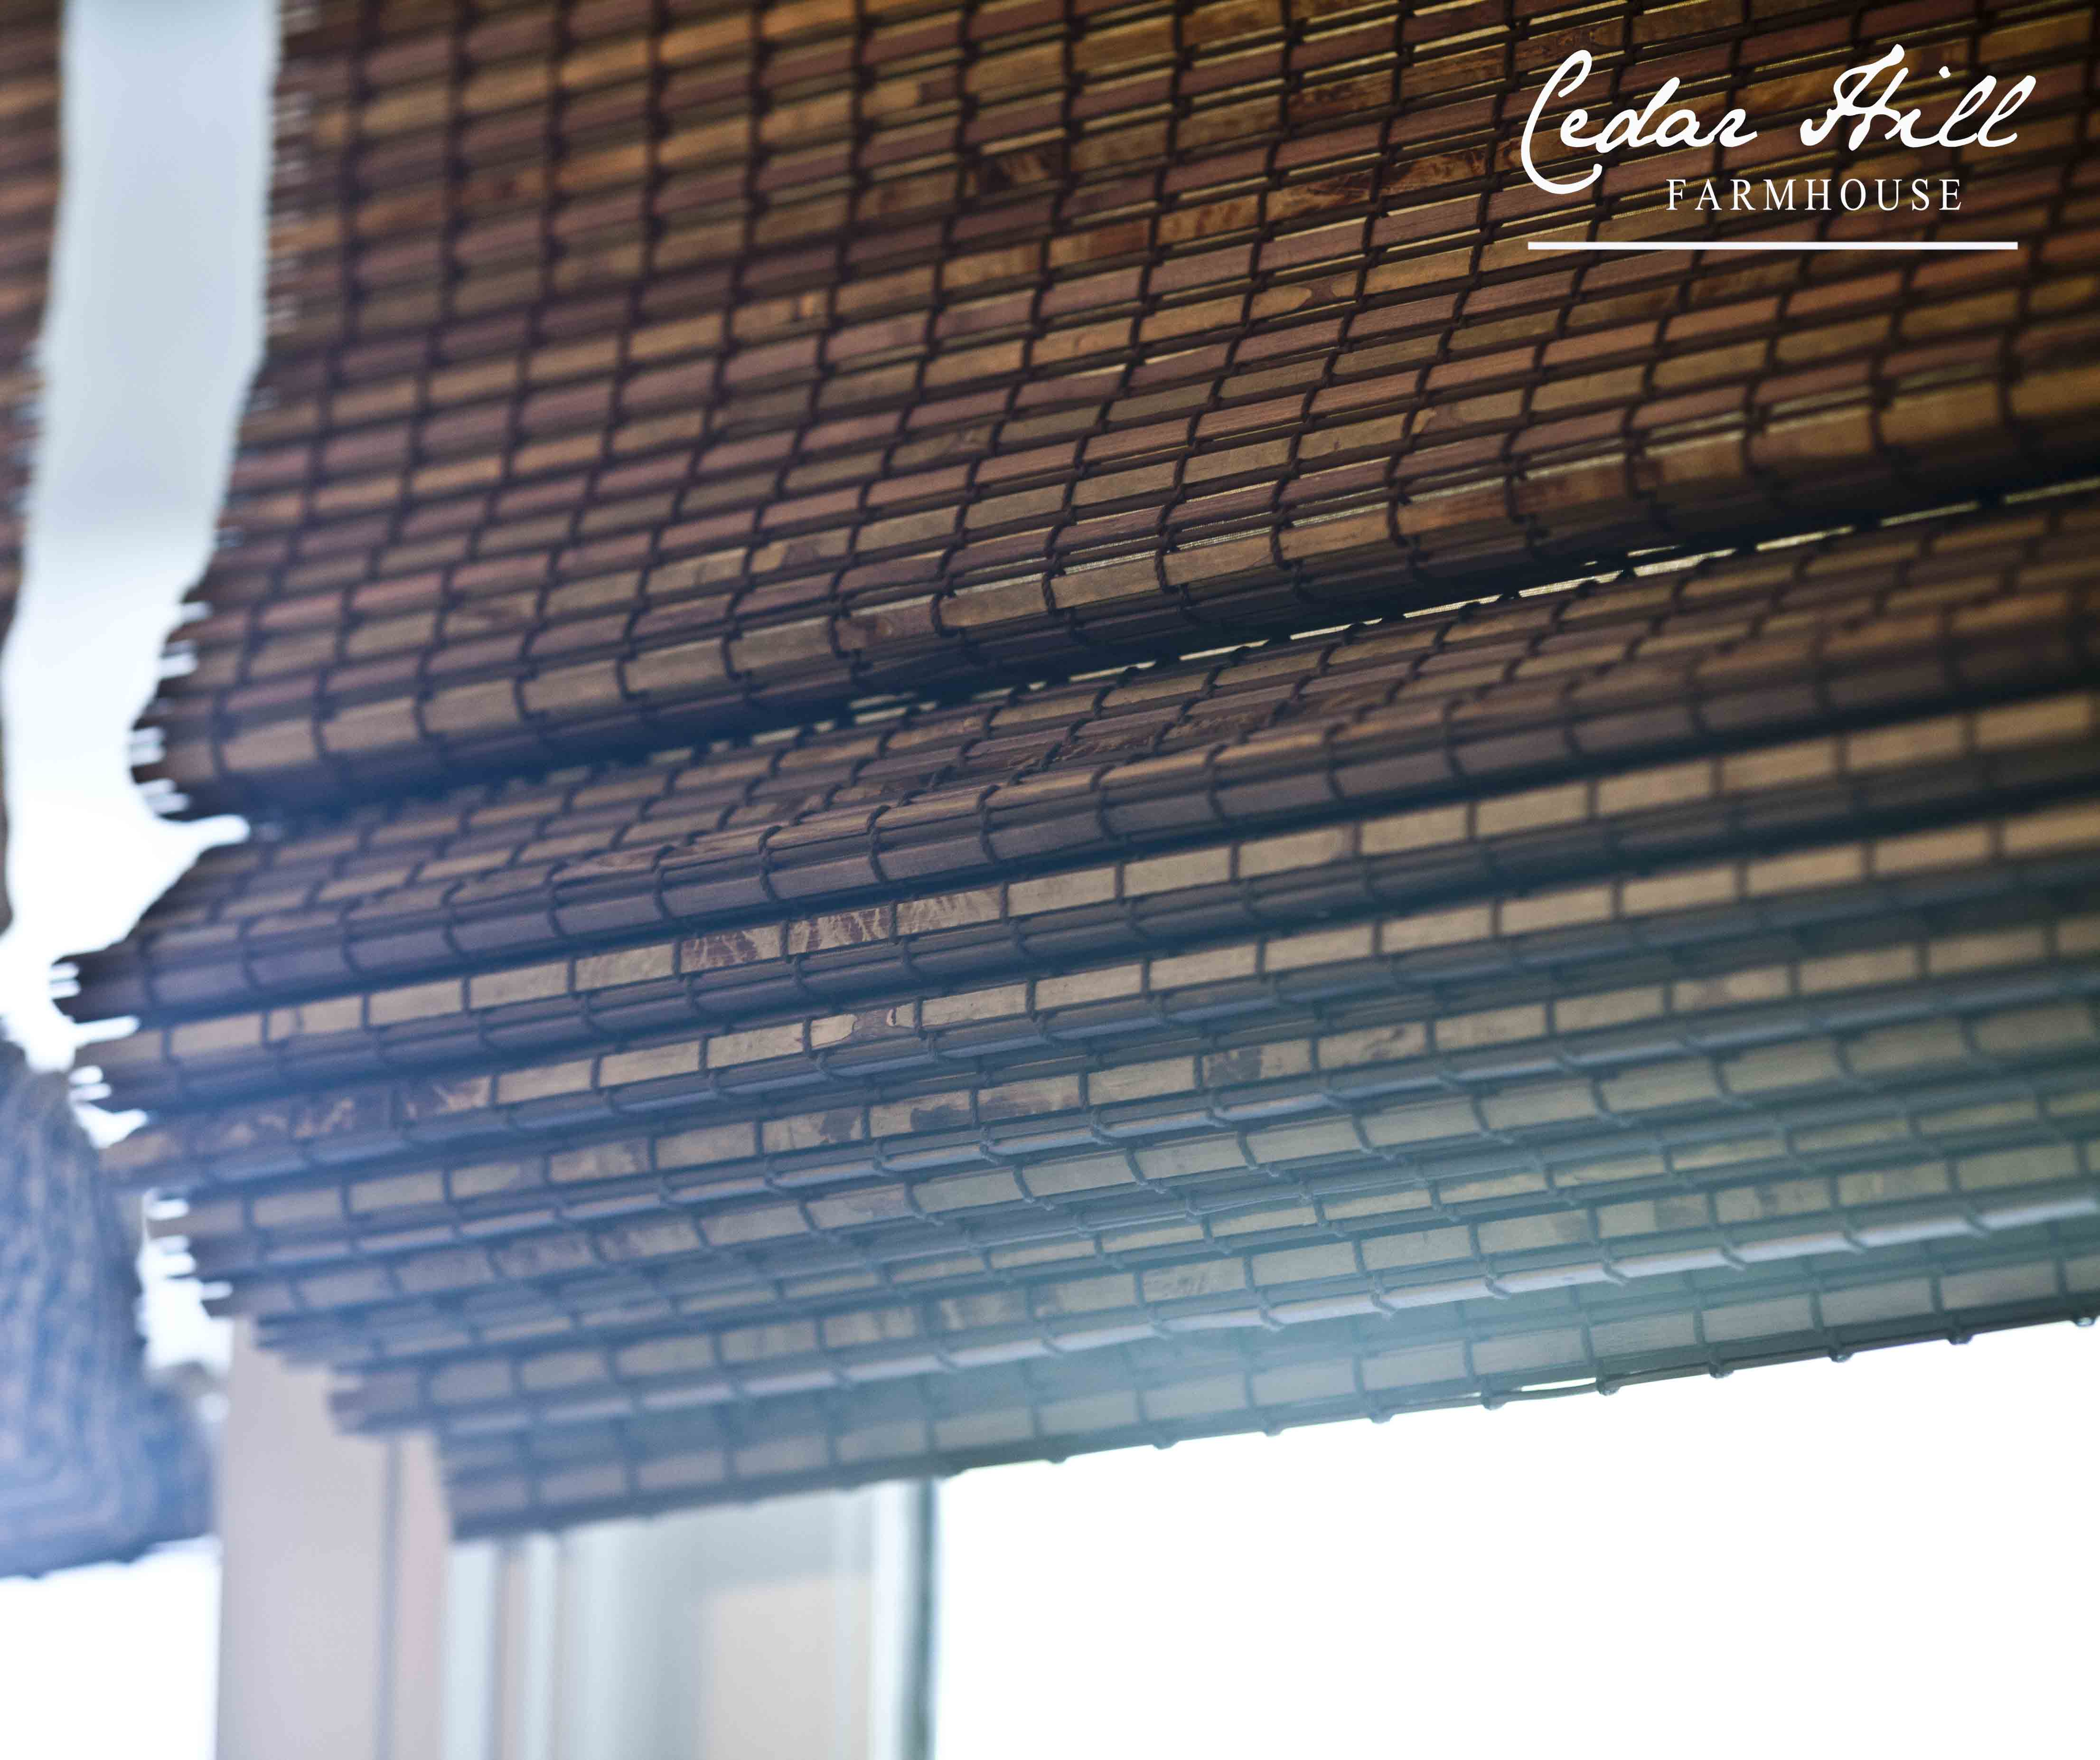 Window Blinds Sources And Information Cedar Hill Farmhouse